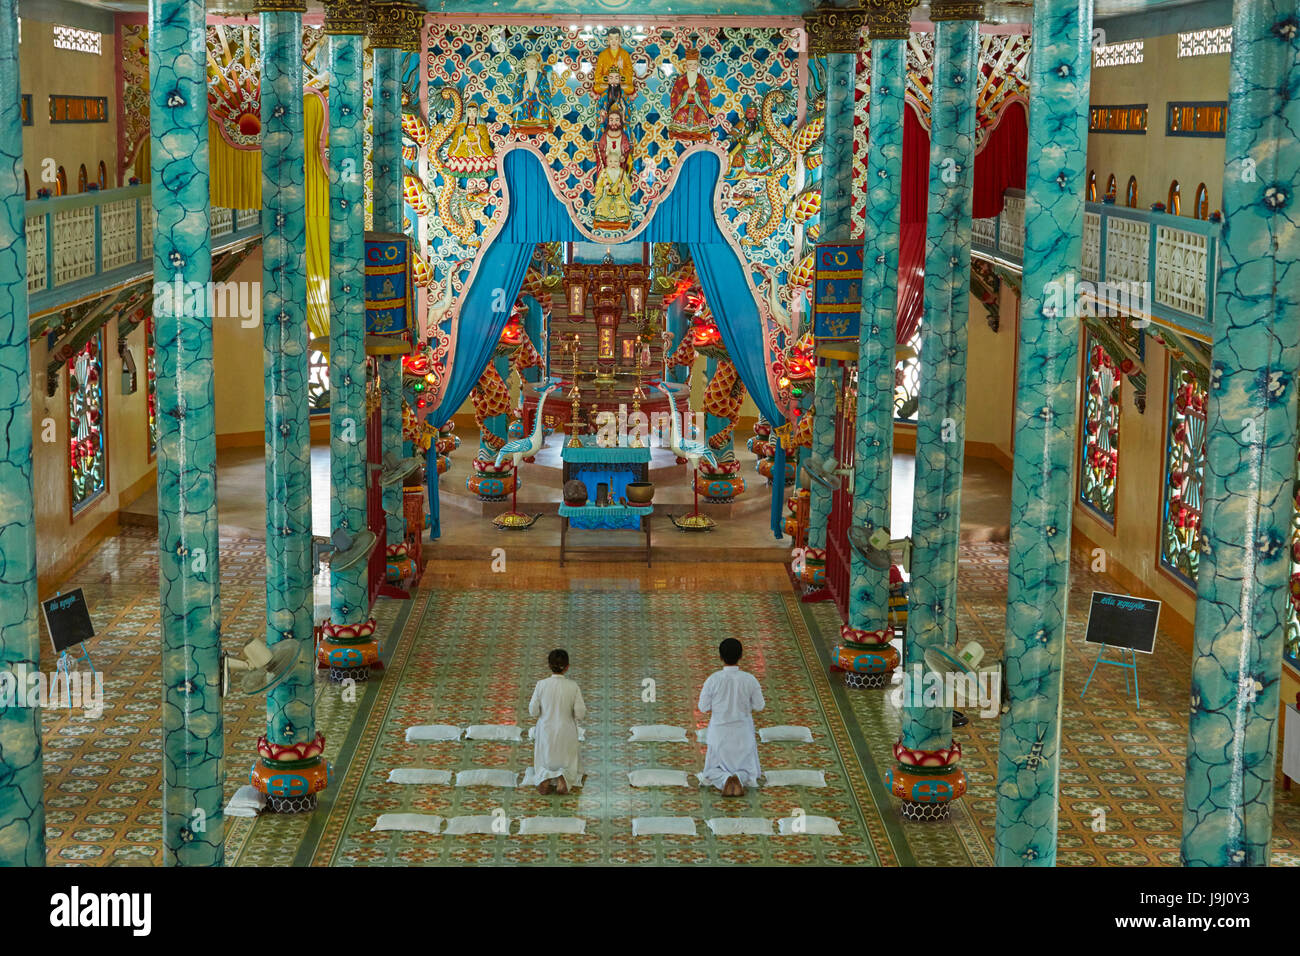 People praying inside Cao Dai Temple, Cai Lay town, Tien Giang province, Mekong Delta, Vietnam - Stock Image